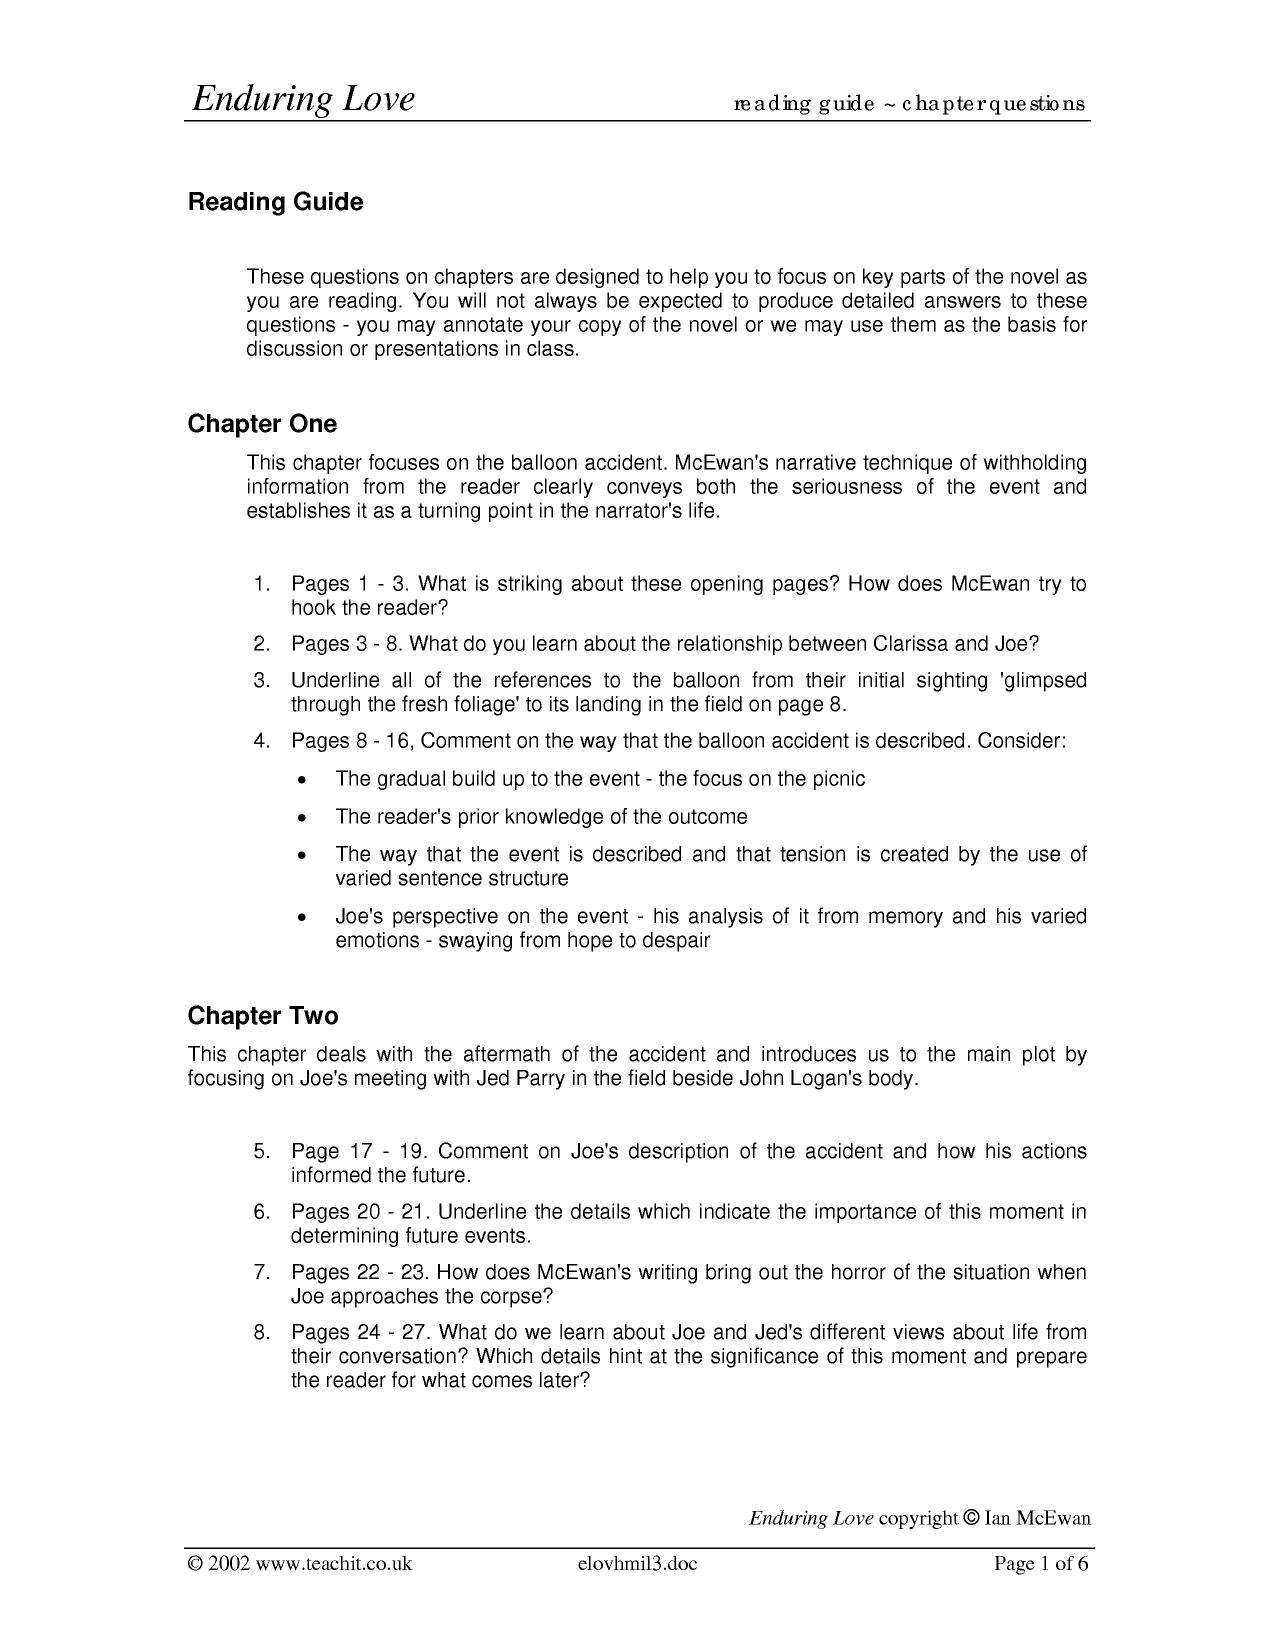 things fall apart reading guide answers